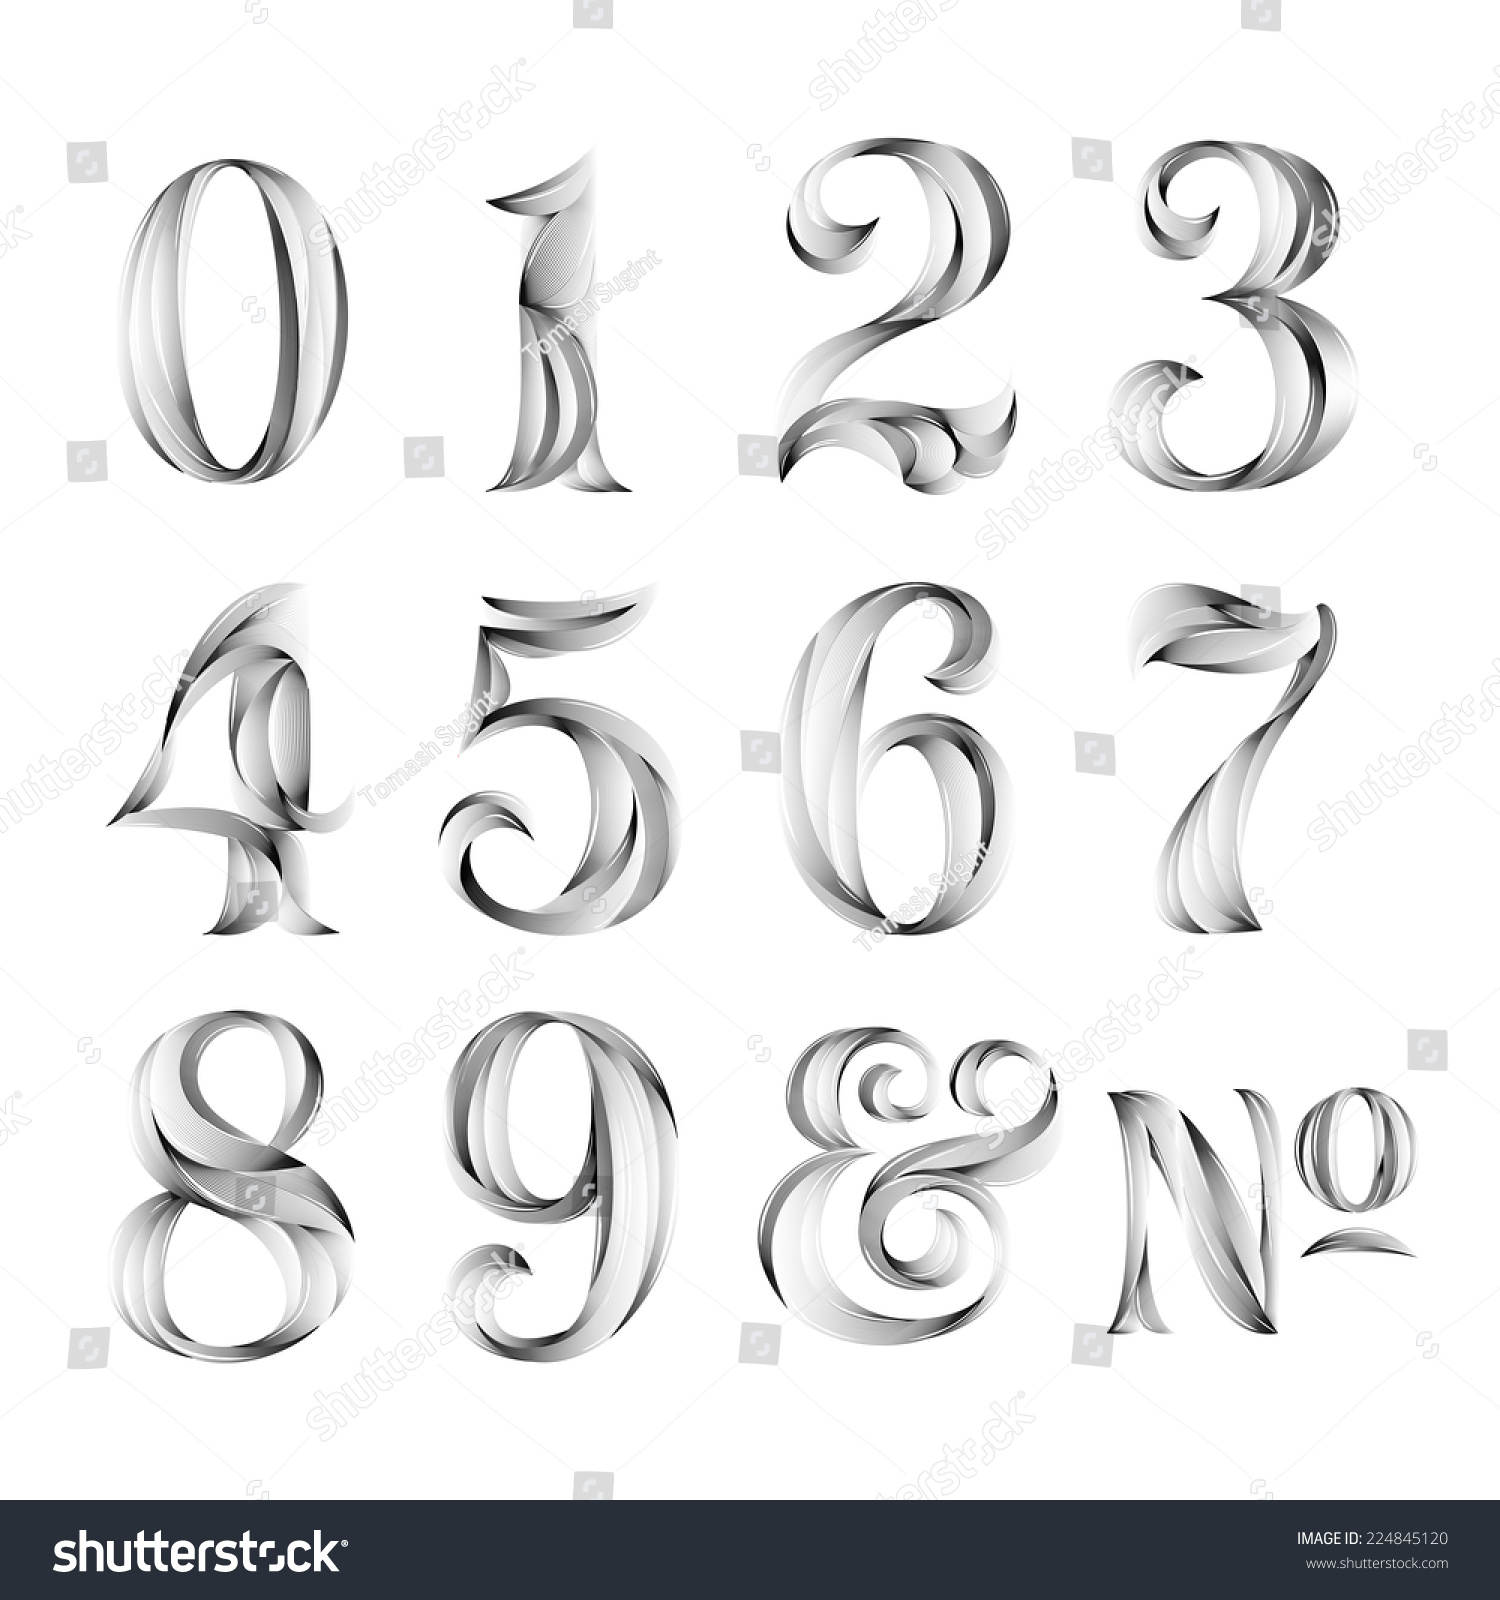 Fancy calligraphy numbers pictures to pin on pinterest